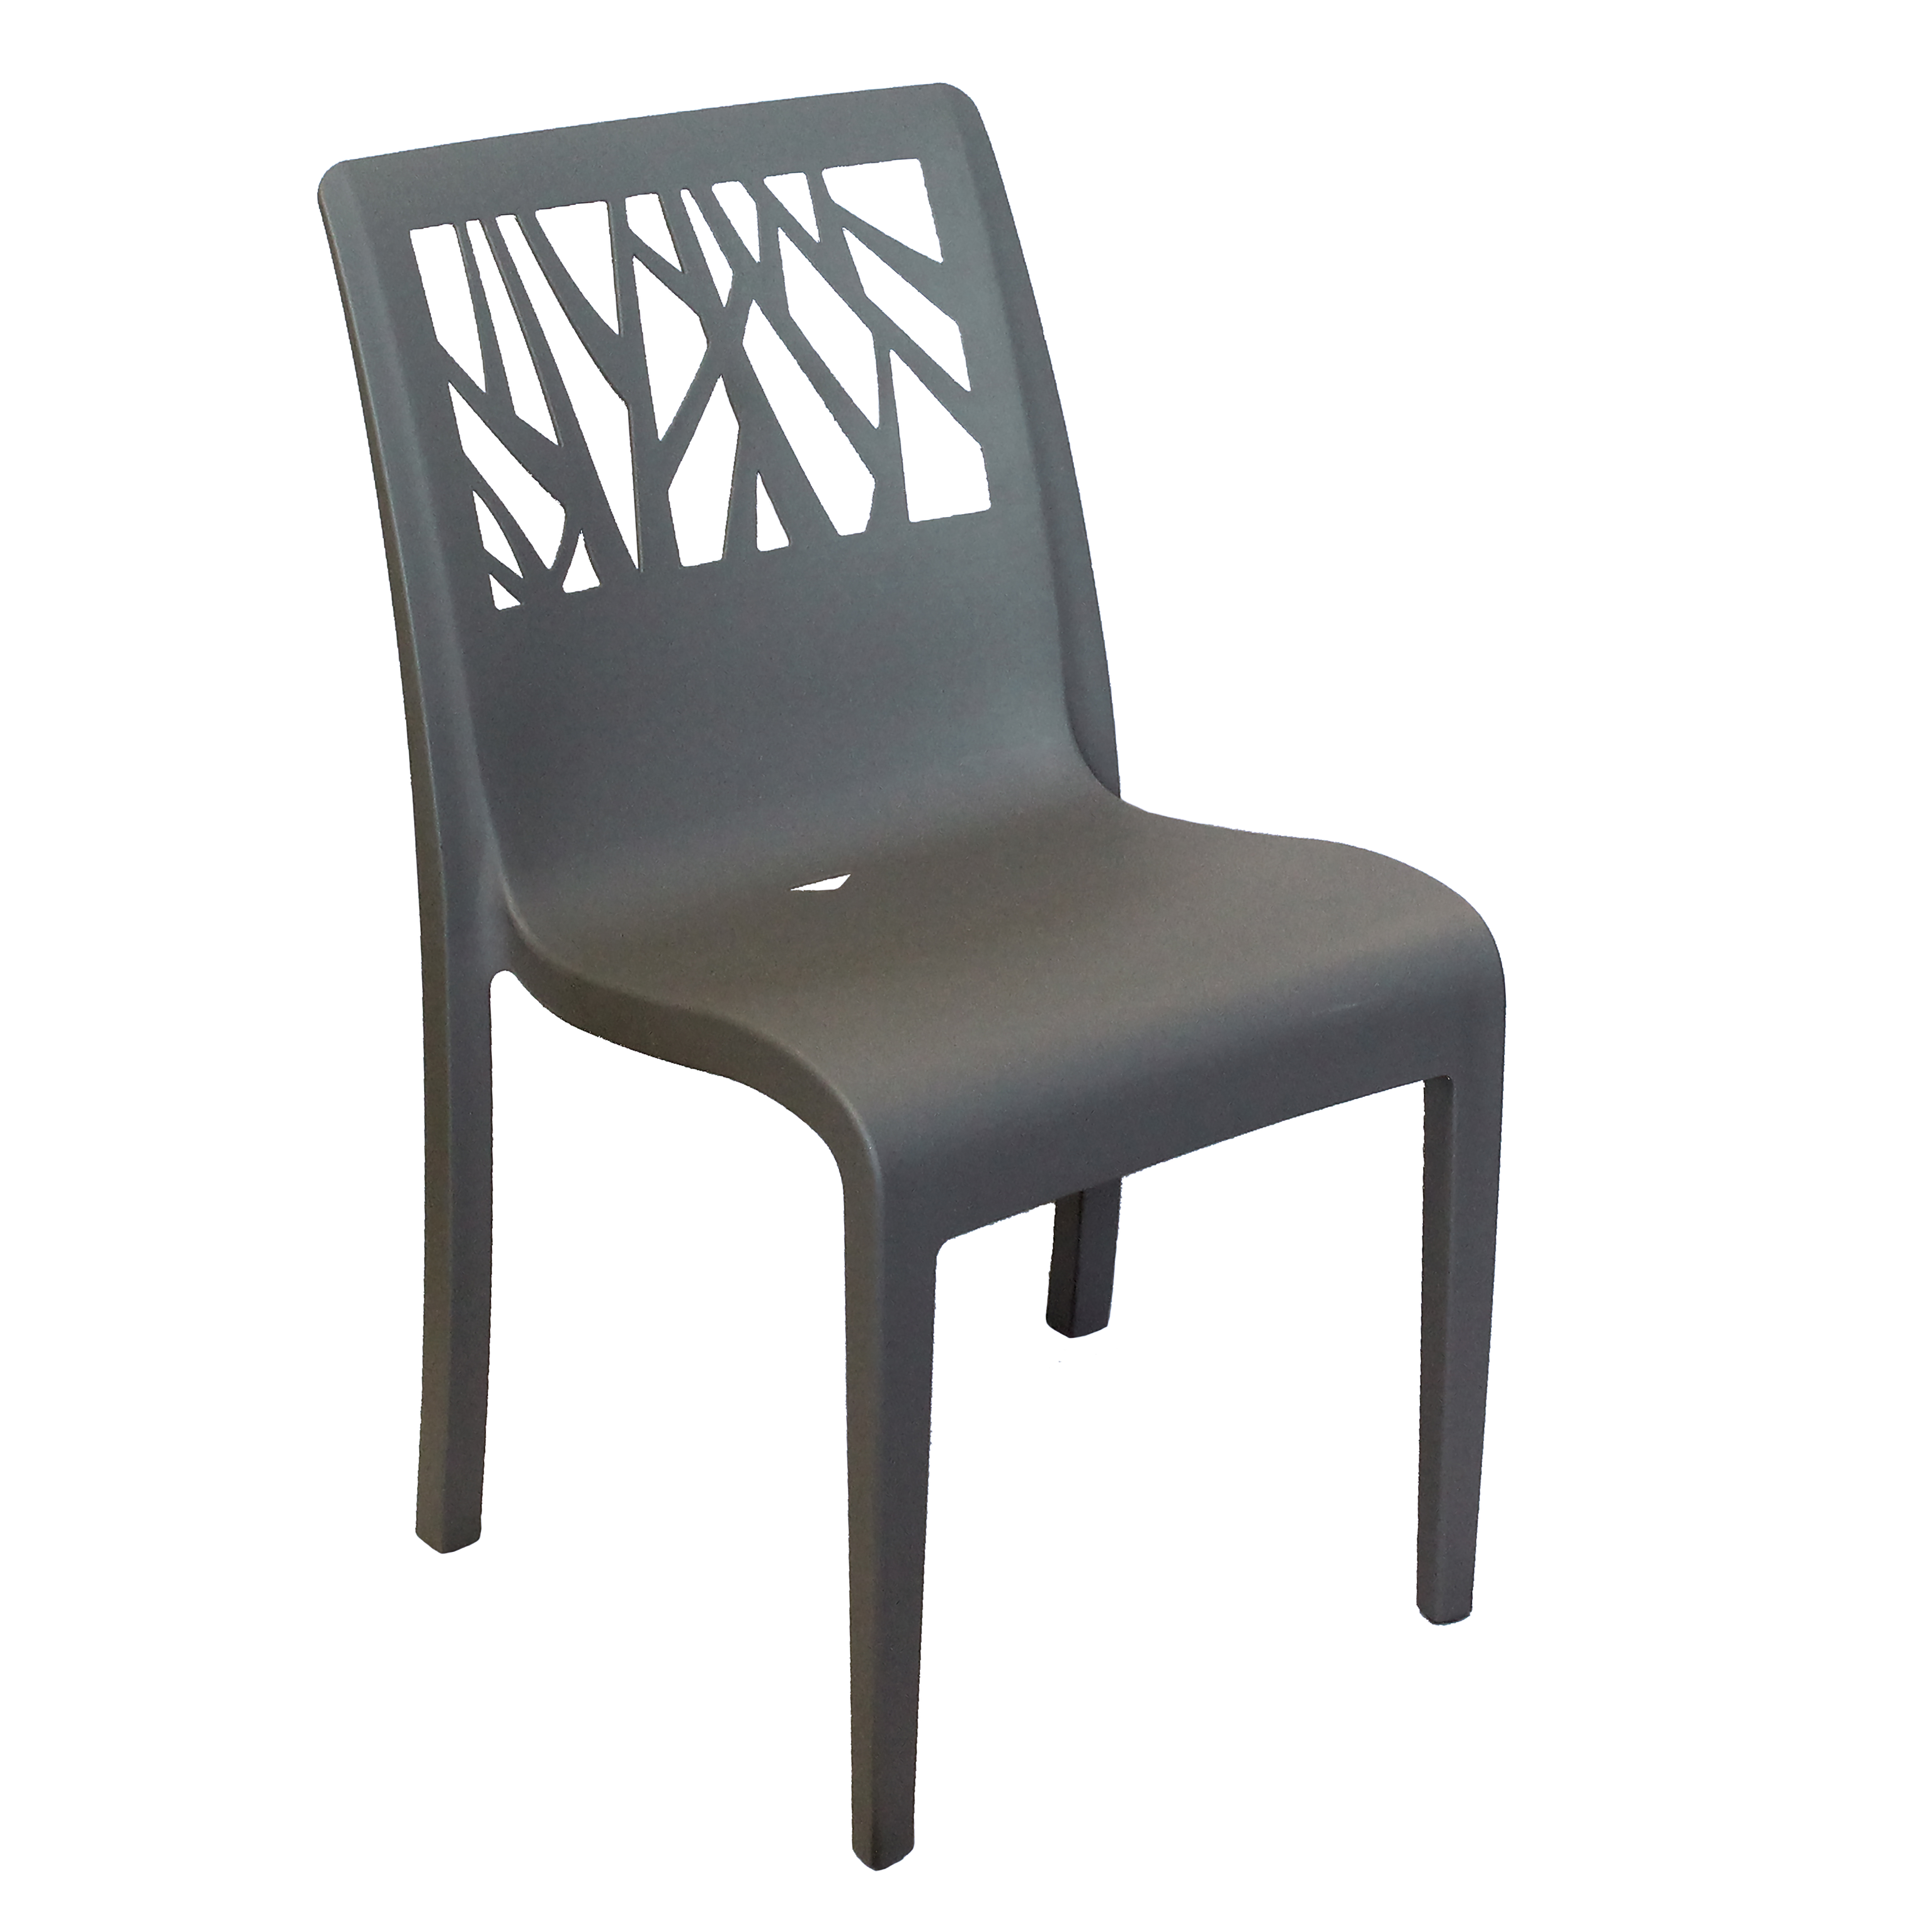 Grosfillex US117002 chair, side, stacking, outdoor